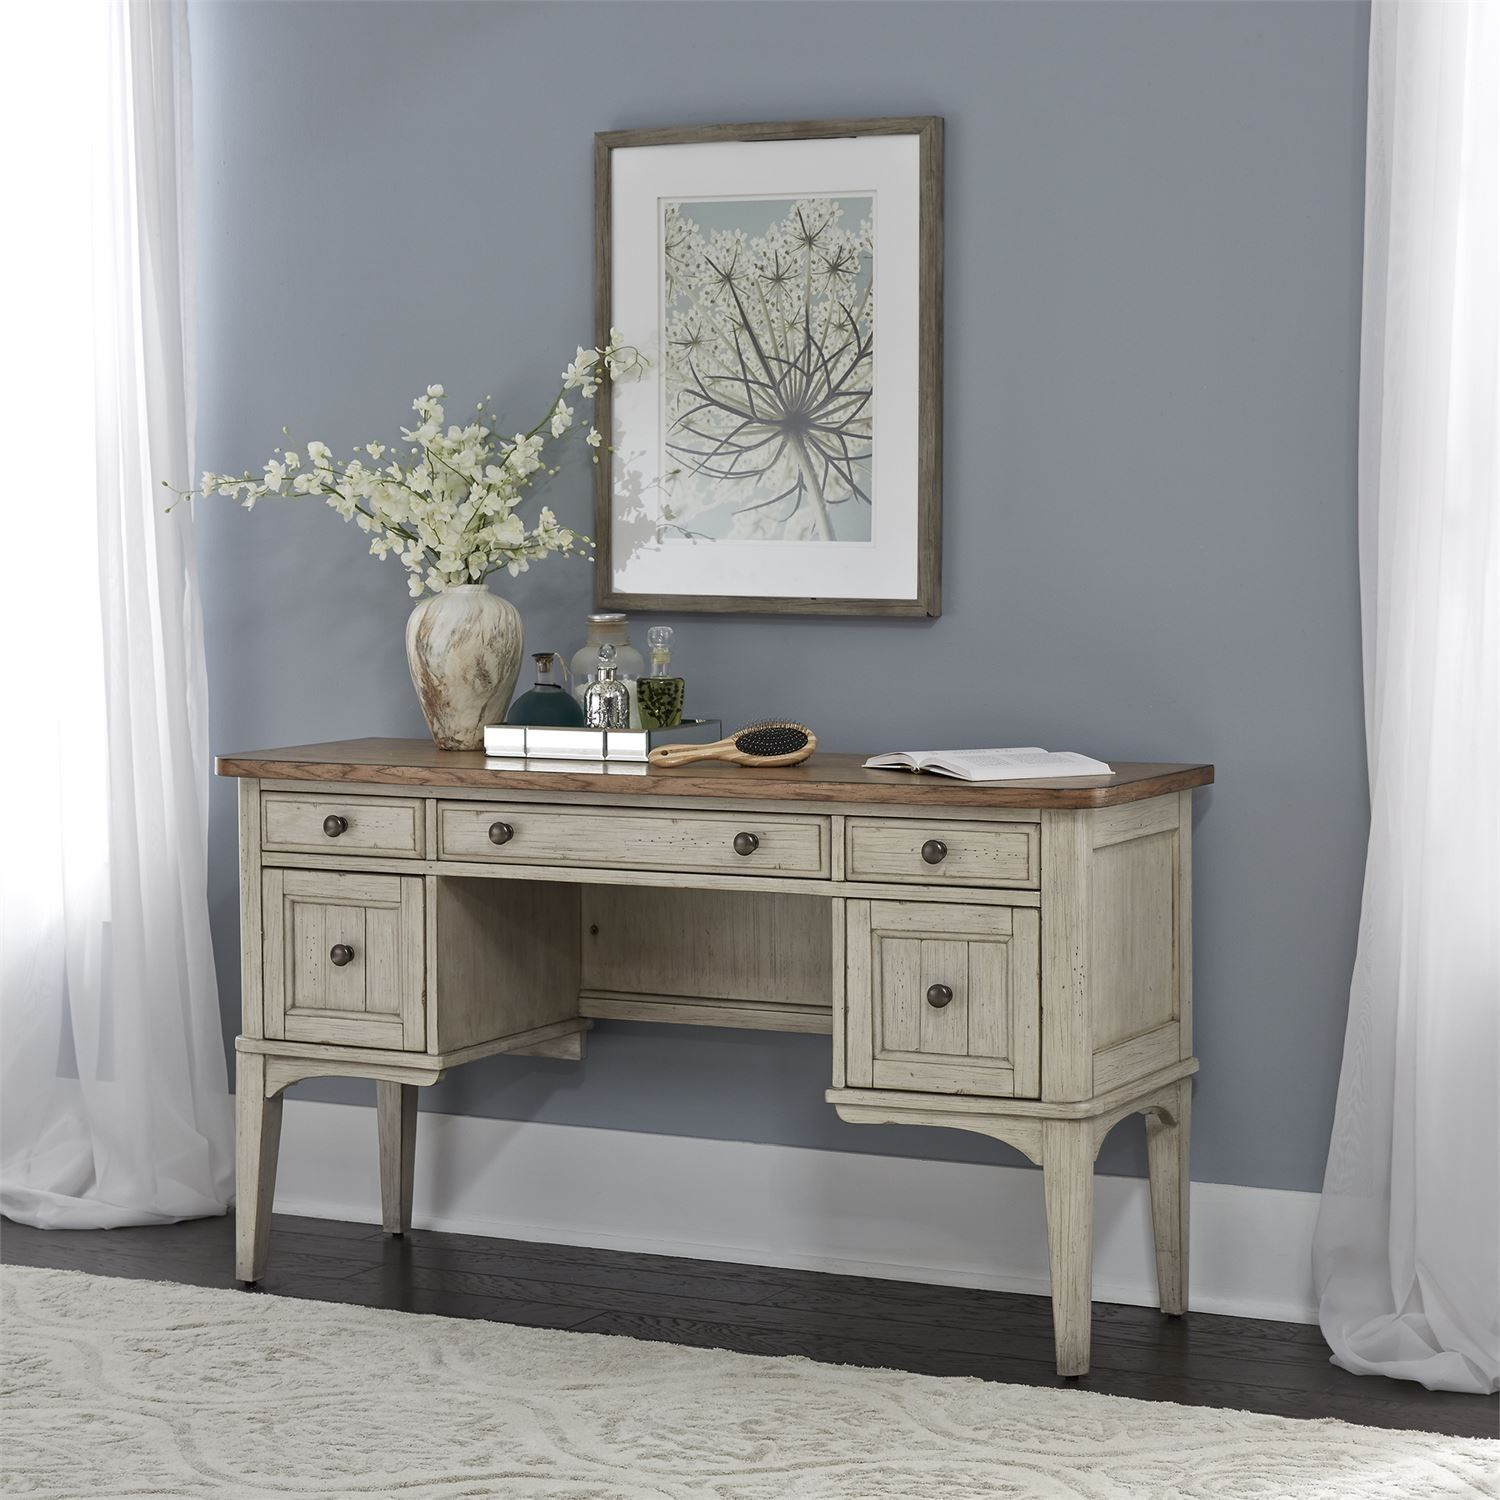 Liberty Furniture Farmhouse Reimagined Relaxed Vintage Two Toned Vanity Desk Sheely S Furniture Appliance Vanities Vanity Sets